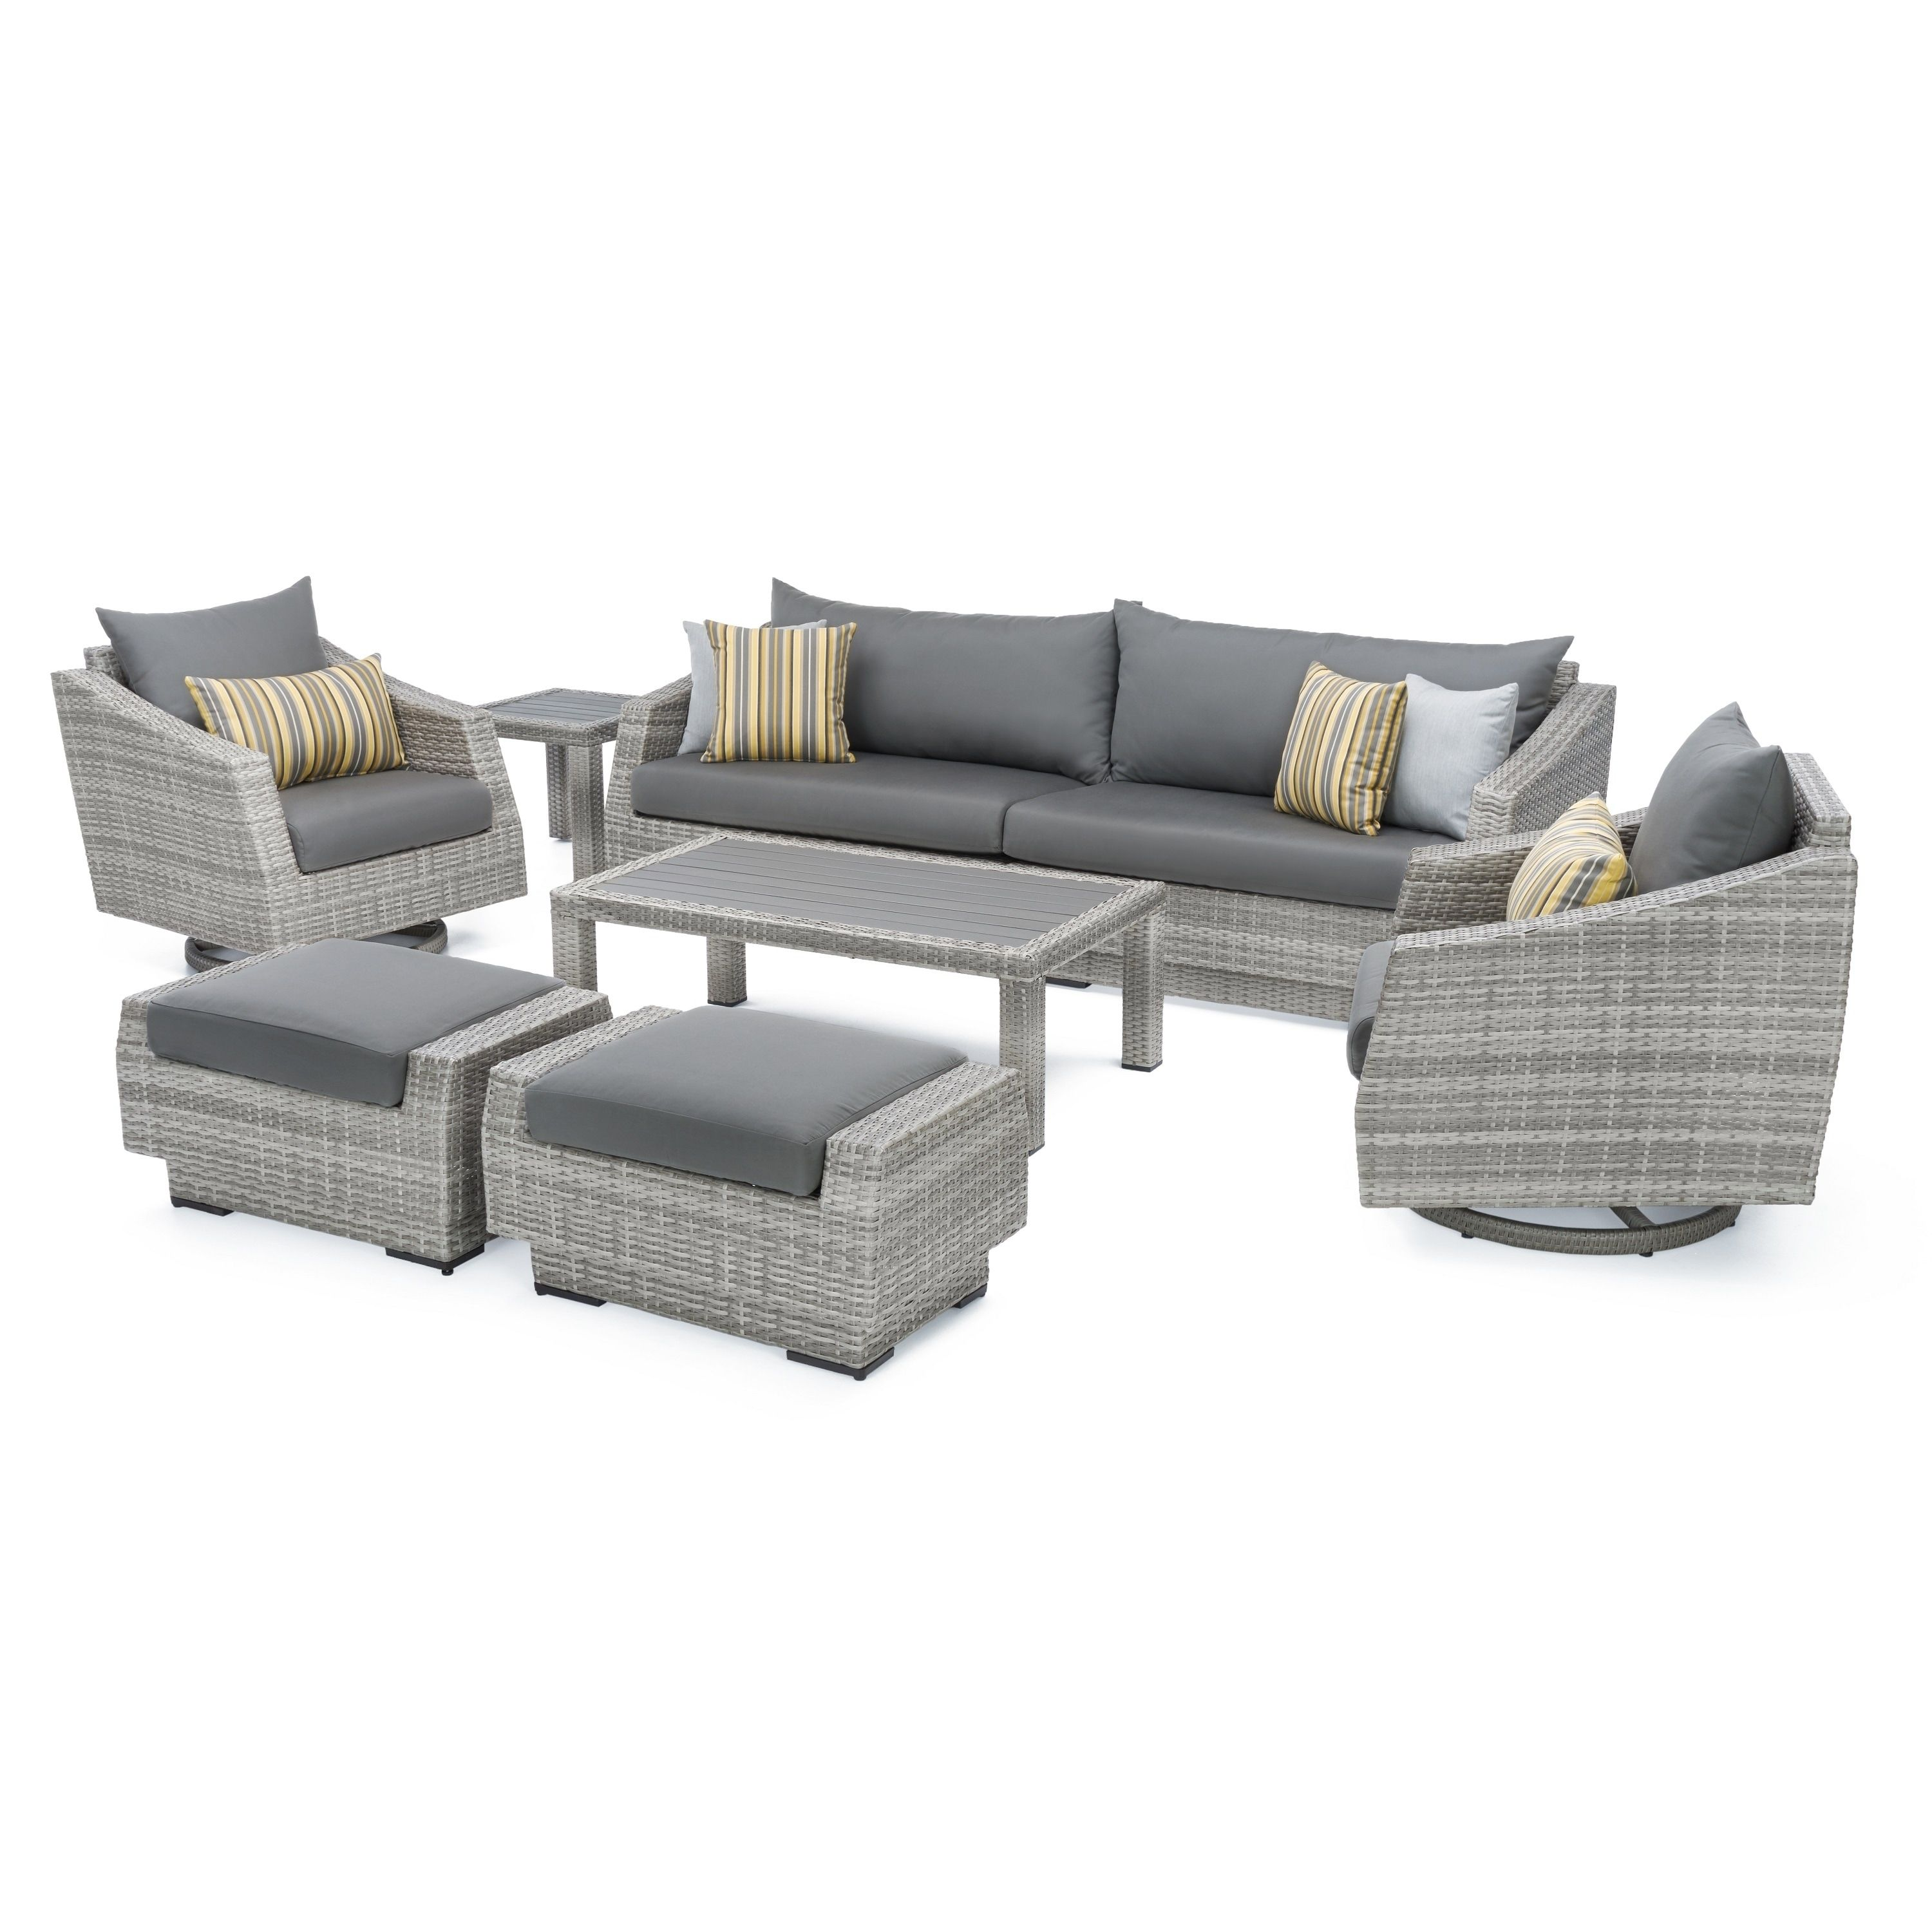 Cannes Deluxe 8pc Sofa & Club Chair Set In Charcoal Gray